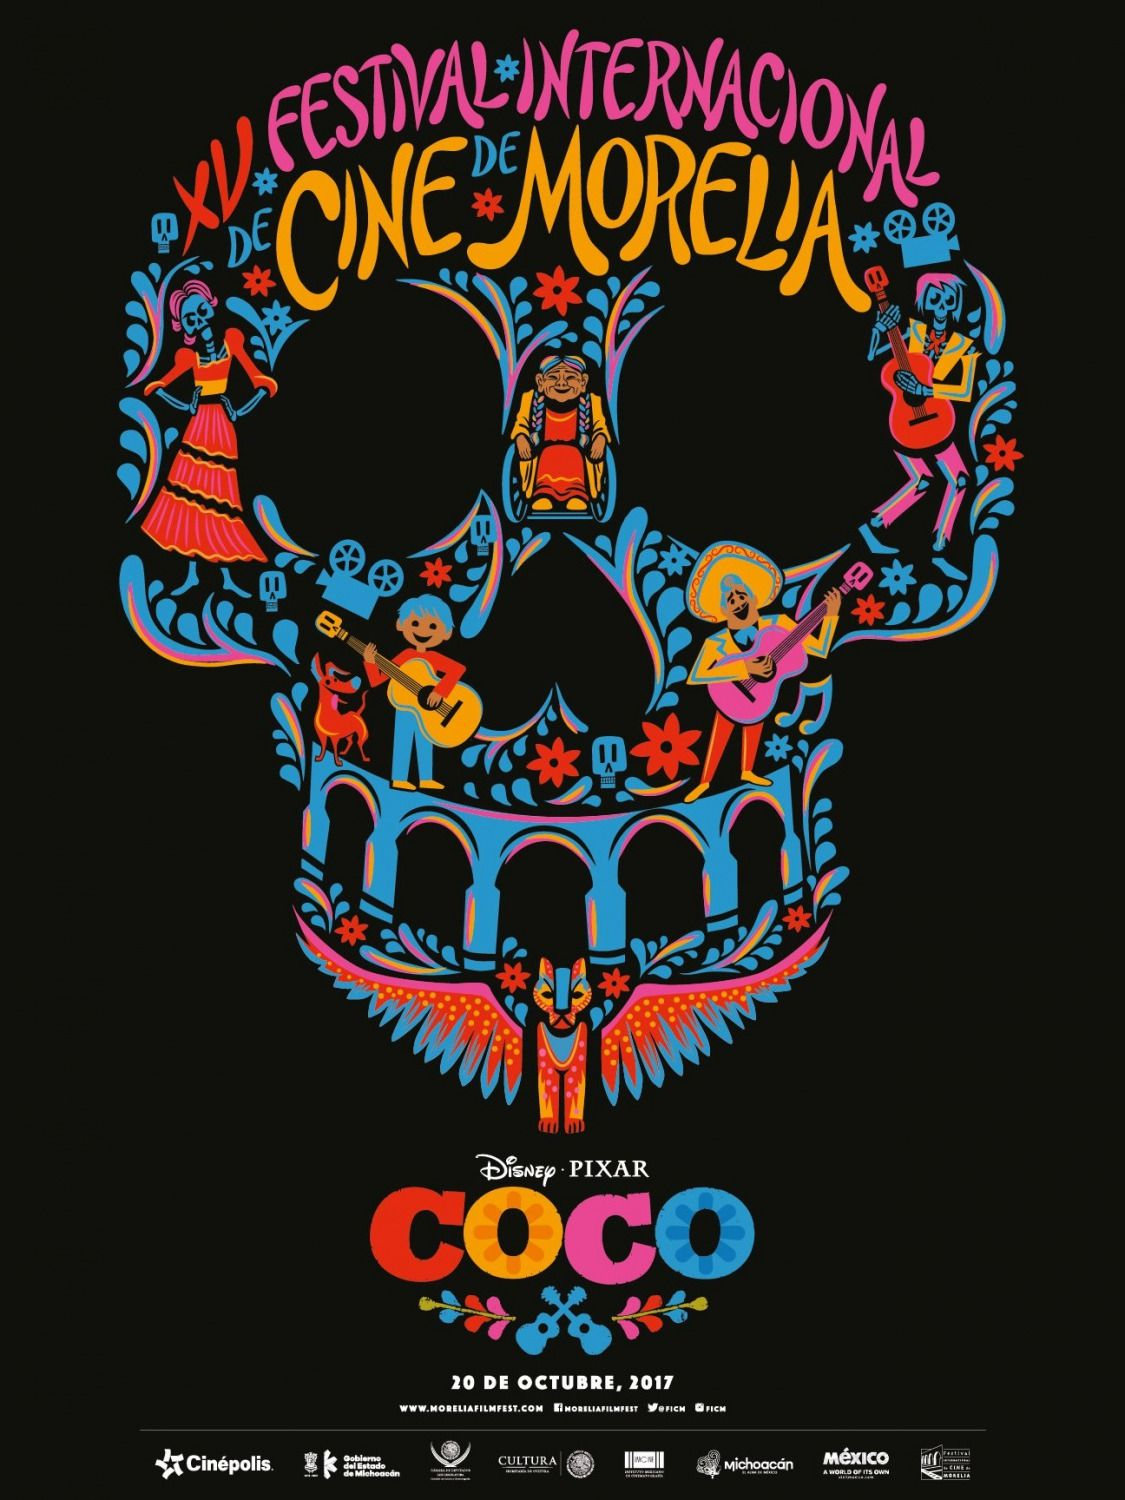 coco (2017) hd wallpaper from gallsource | art | pinterest